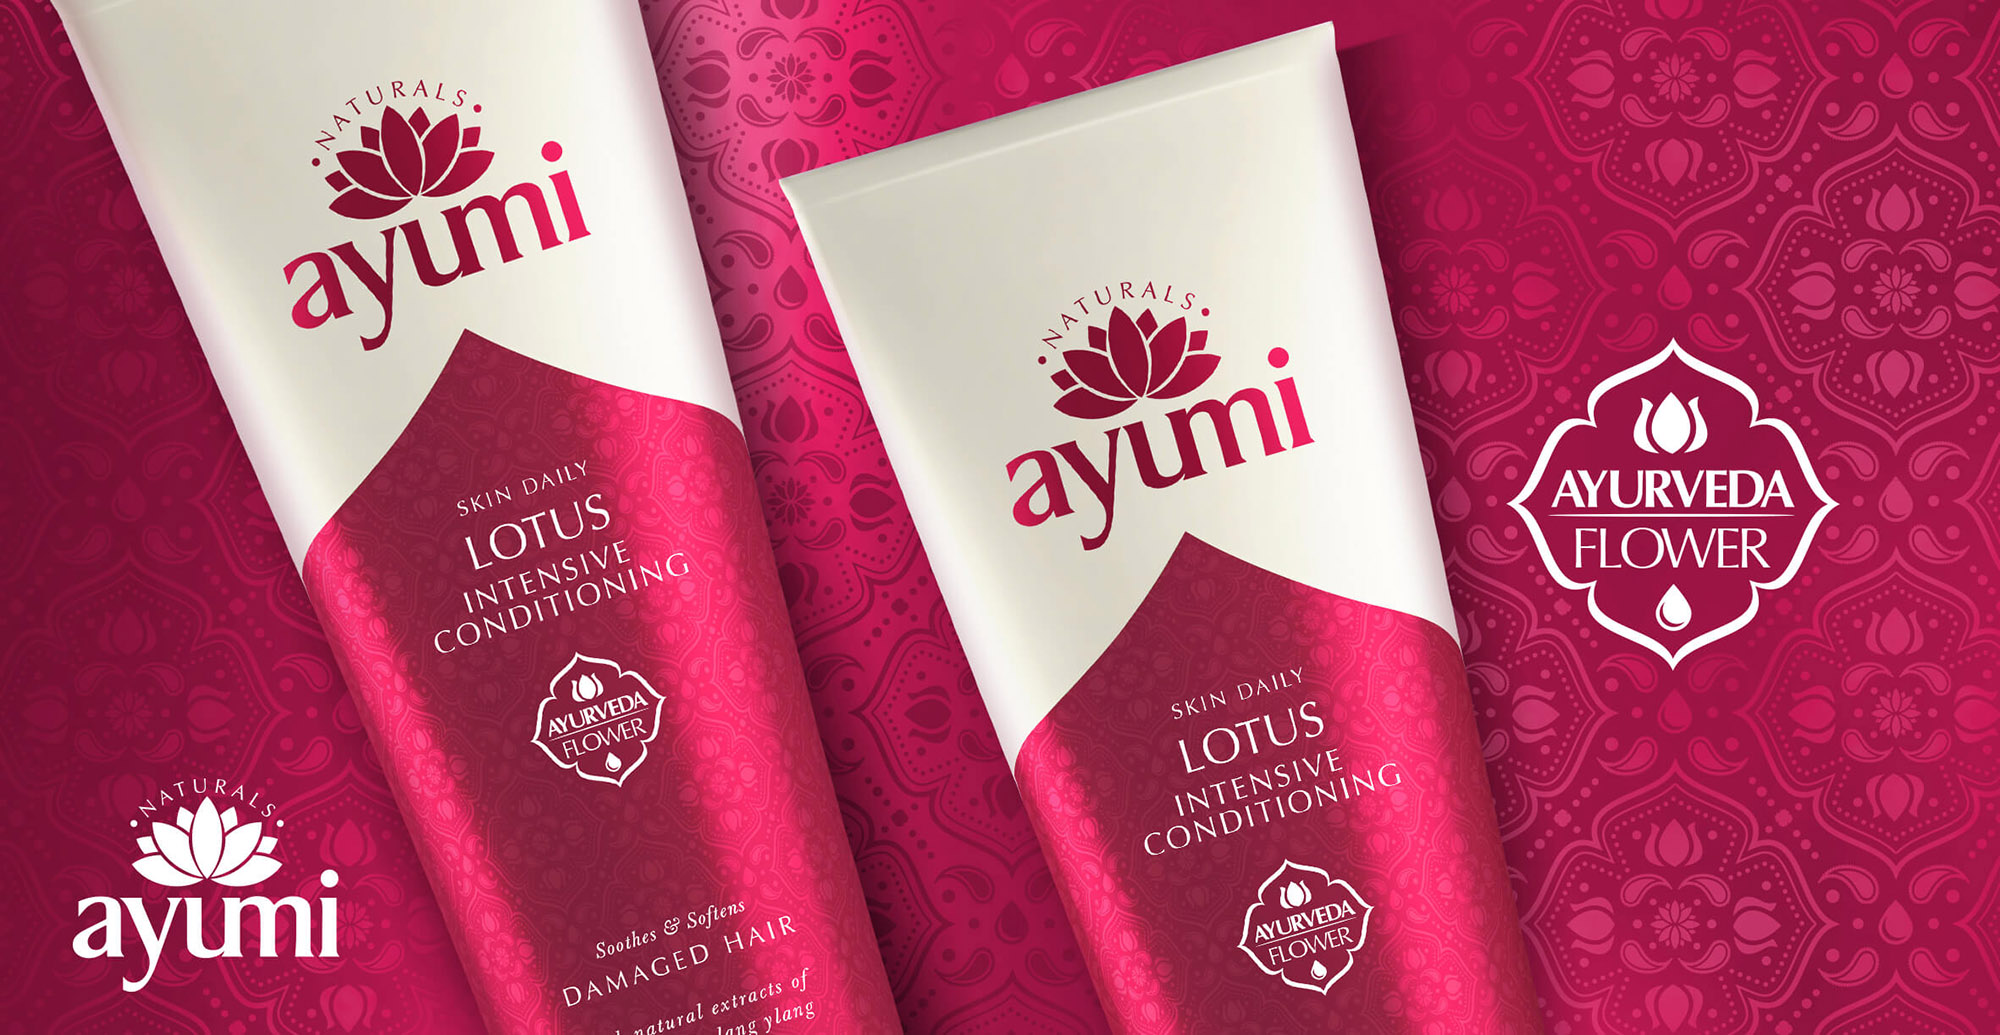 Health and Beauty Branding and Packaging Design for Beauty Brand Ayumi - Pack Shot Lotus Intensive Conditioning